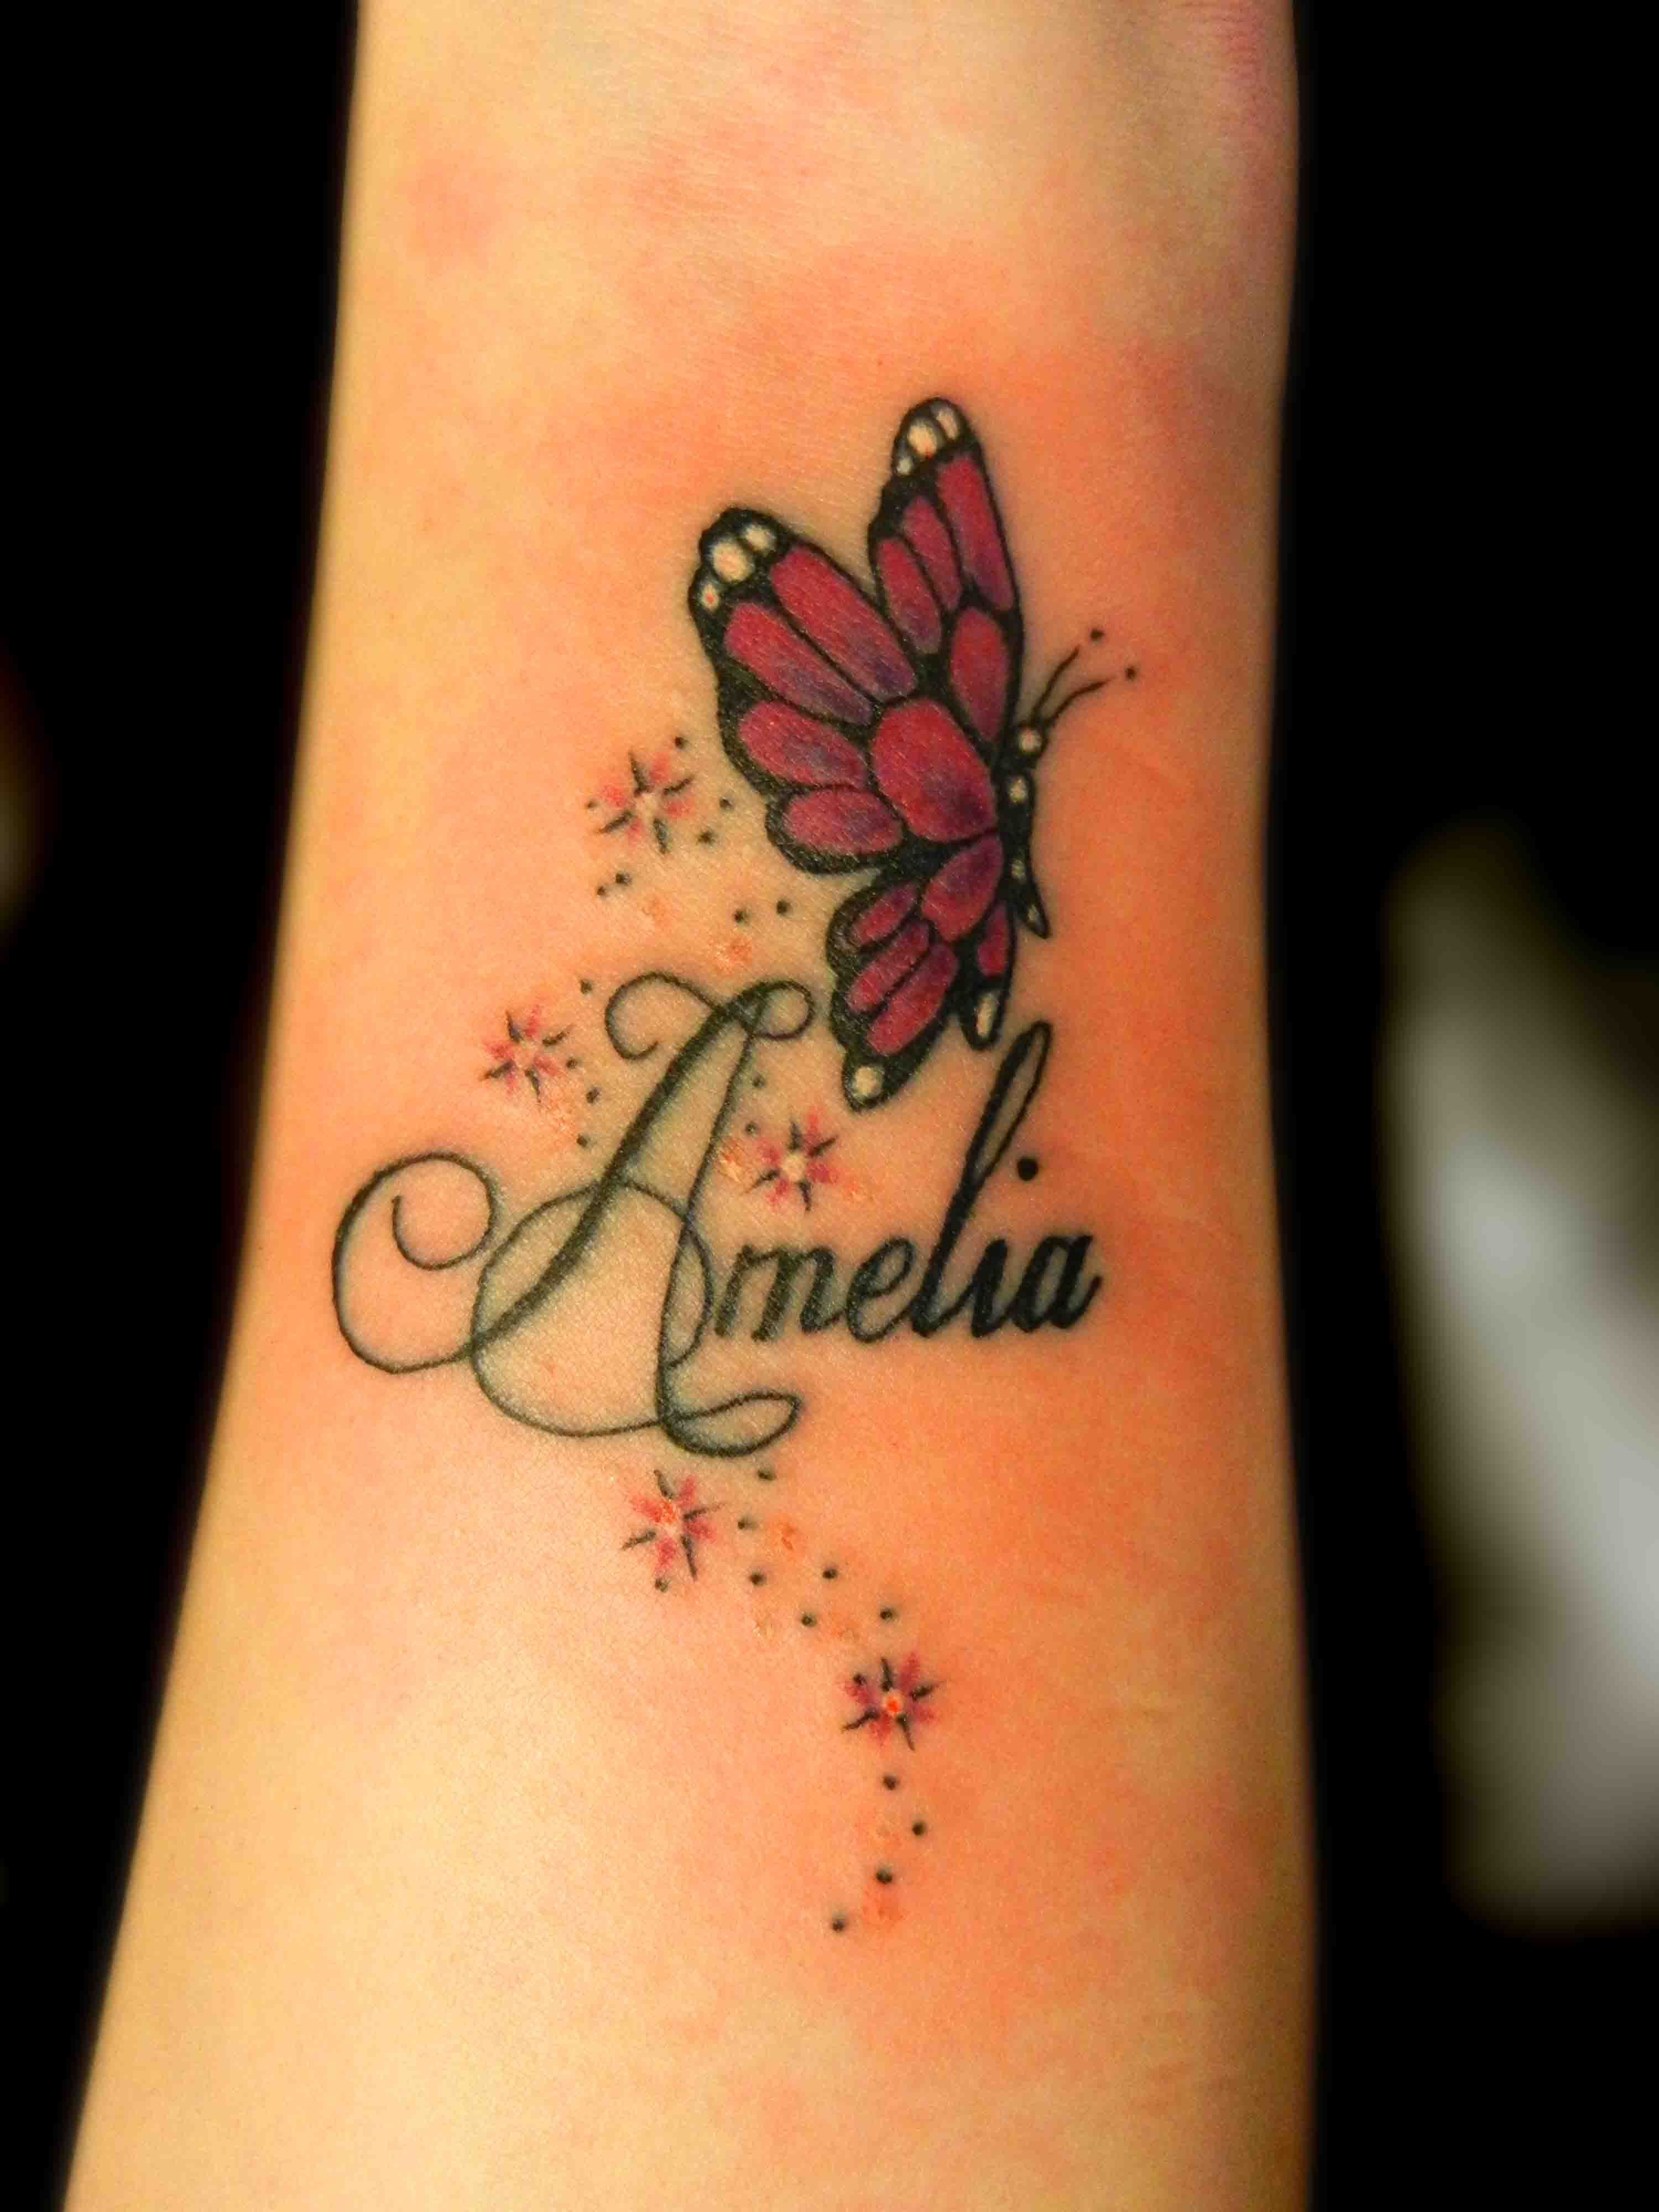 Tattoo Truro Butterfly Tattoo Stars Twinkles Pretty Wrist Girly 001 Jpg Butterfly Tattoos For Women Name Tattoos On Wrist Baby Name Tattoos